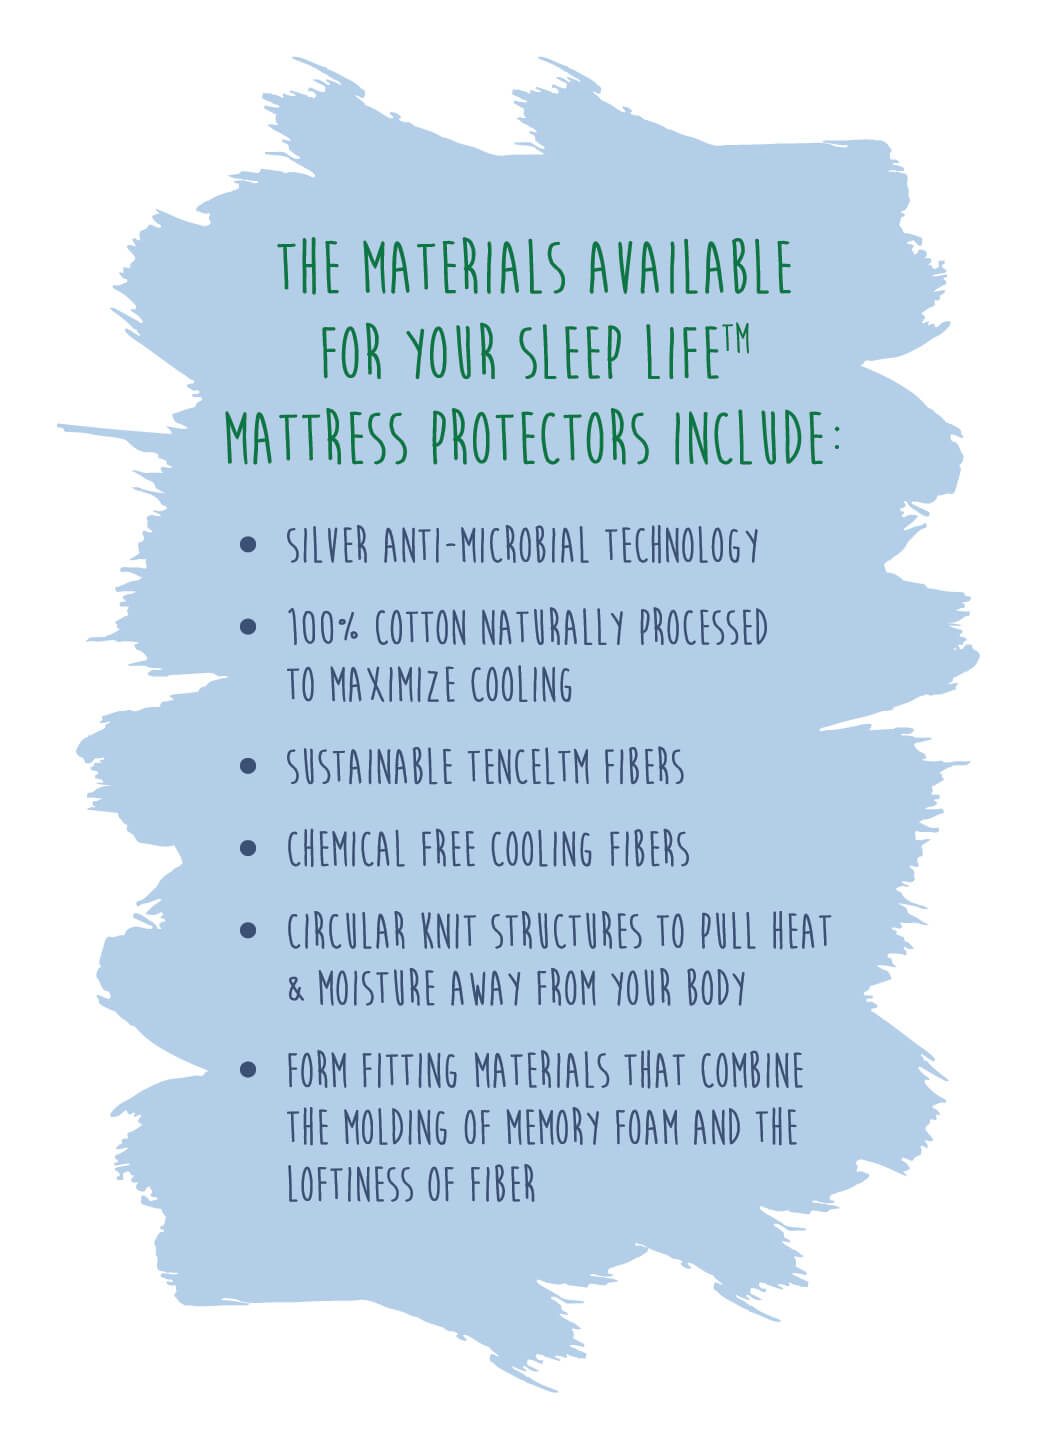 """text that says """"the materials available for your sleep life mattress protectors include: silver anti-microbial technology, 100% cotton naturally processed to maximize cooling, sustainable tencel fibers, chemical free cooling fibers, circular knit structures to pull heat & moisture away from your body, form fitting materials that combine the molding of memory foam and the loftiness of fiber."""""""